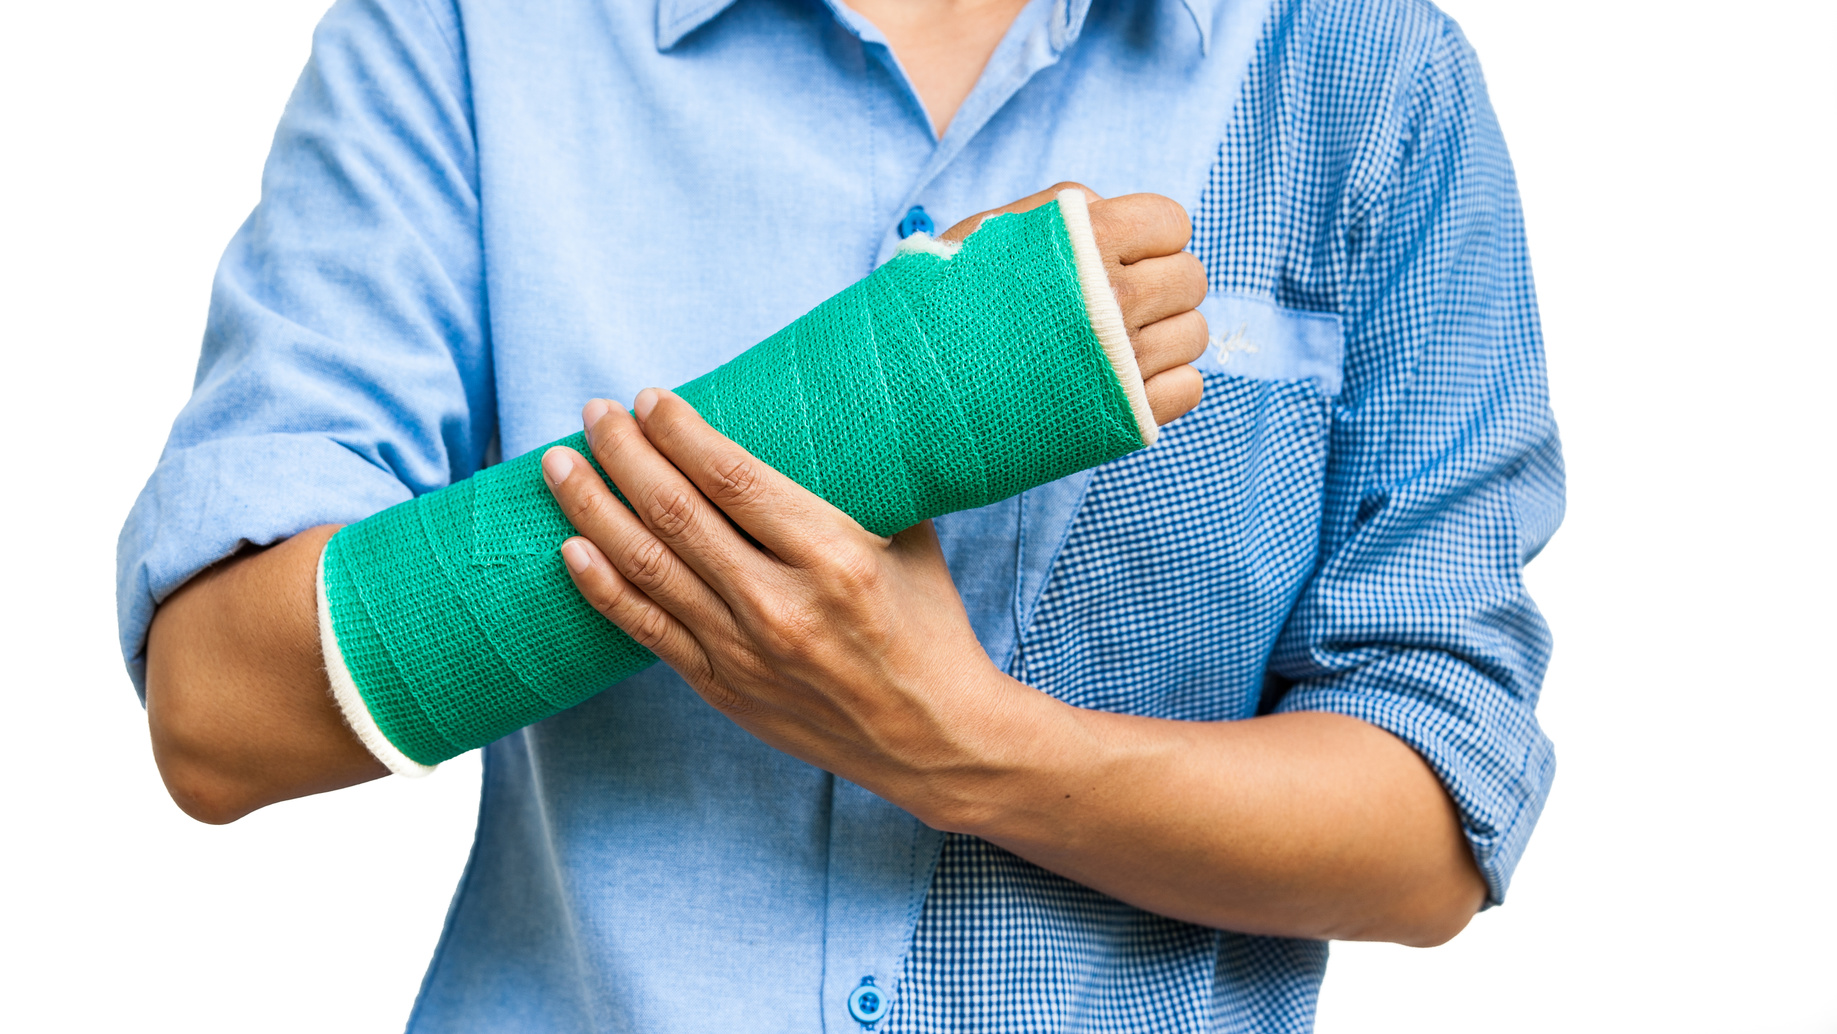 Broken Bones Expected in a Florida Auto Accident